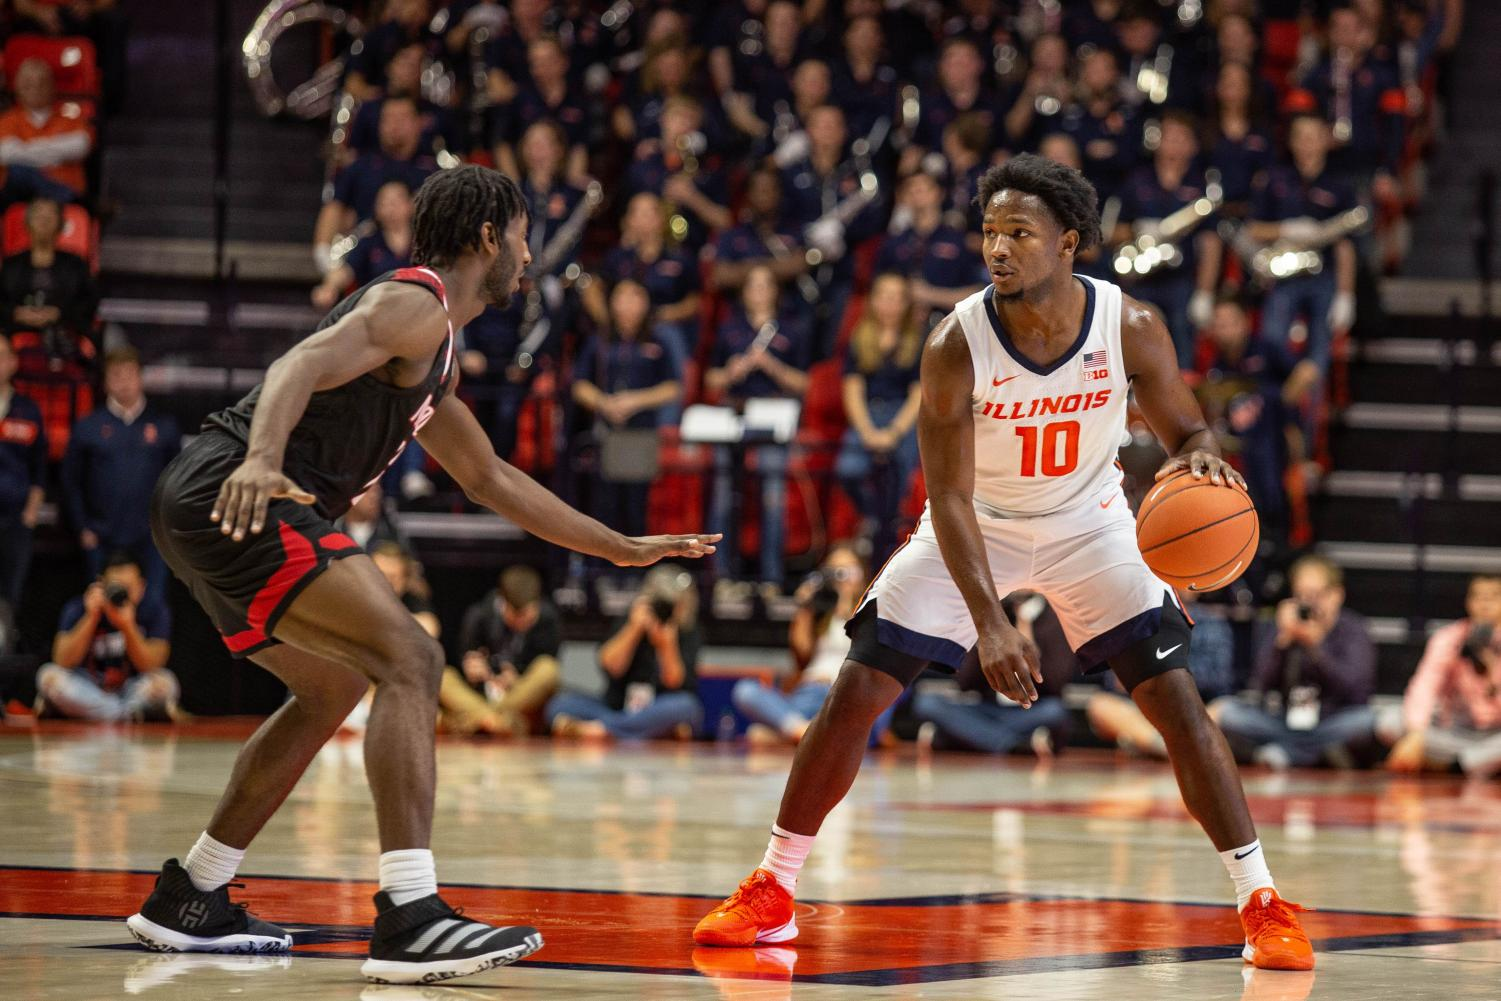 Senior guard Andrés Feliz dribbles in front of Nicholls State's defense during the team's home regular-season opener. The Illini beat the Colonels 78-70 in overtime at the State Farm Center on Nov. 4. Ben Tschetter, The Daily Illini.